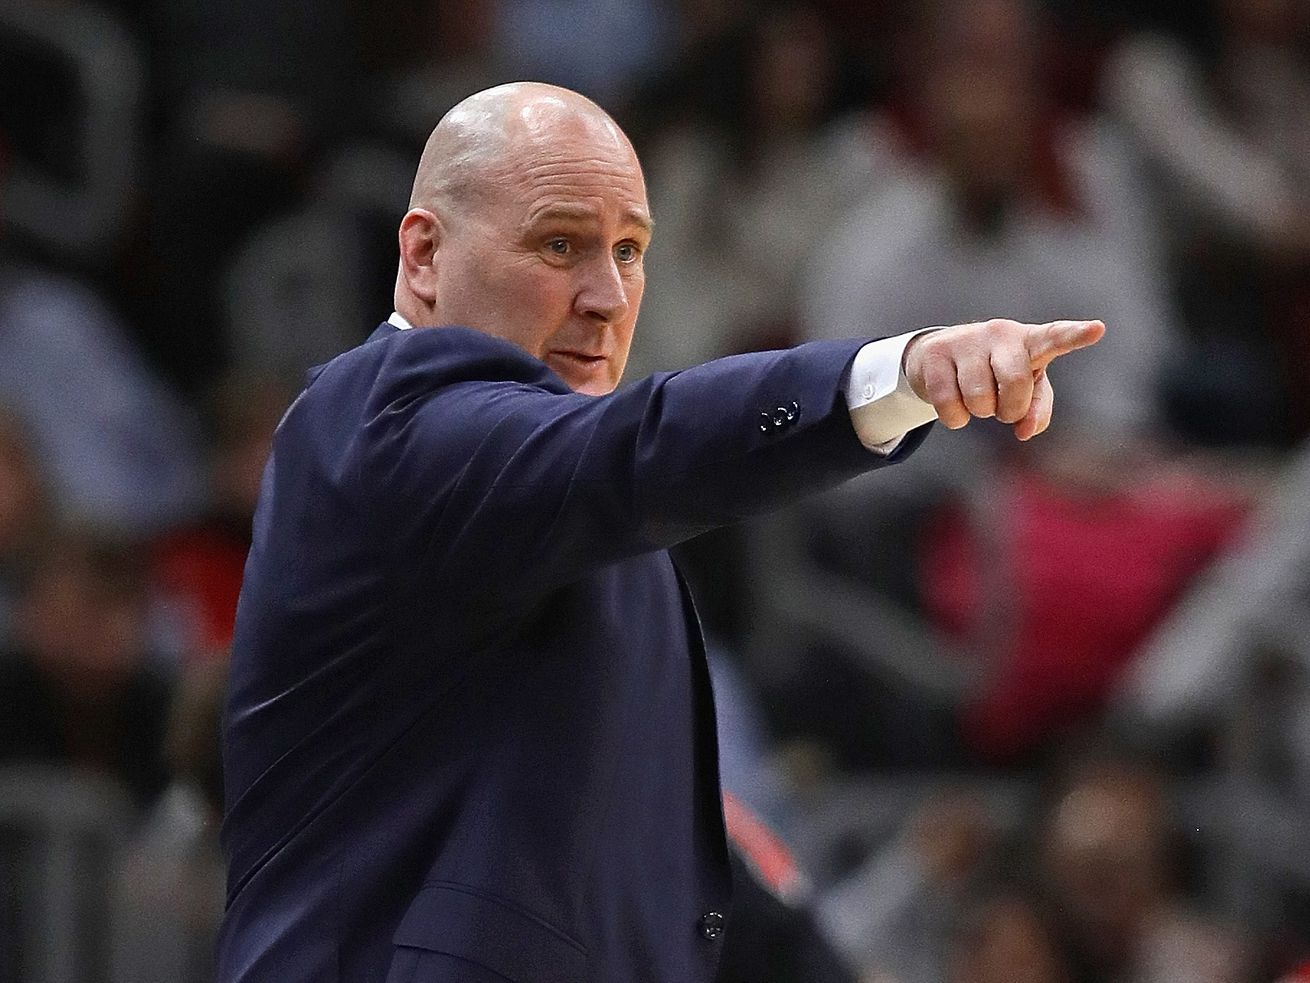 With the Bulls' season done (yay!), get the Jim Boylen firing over with already